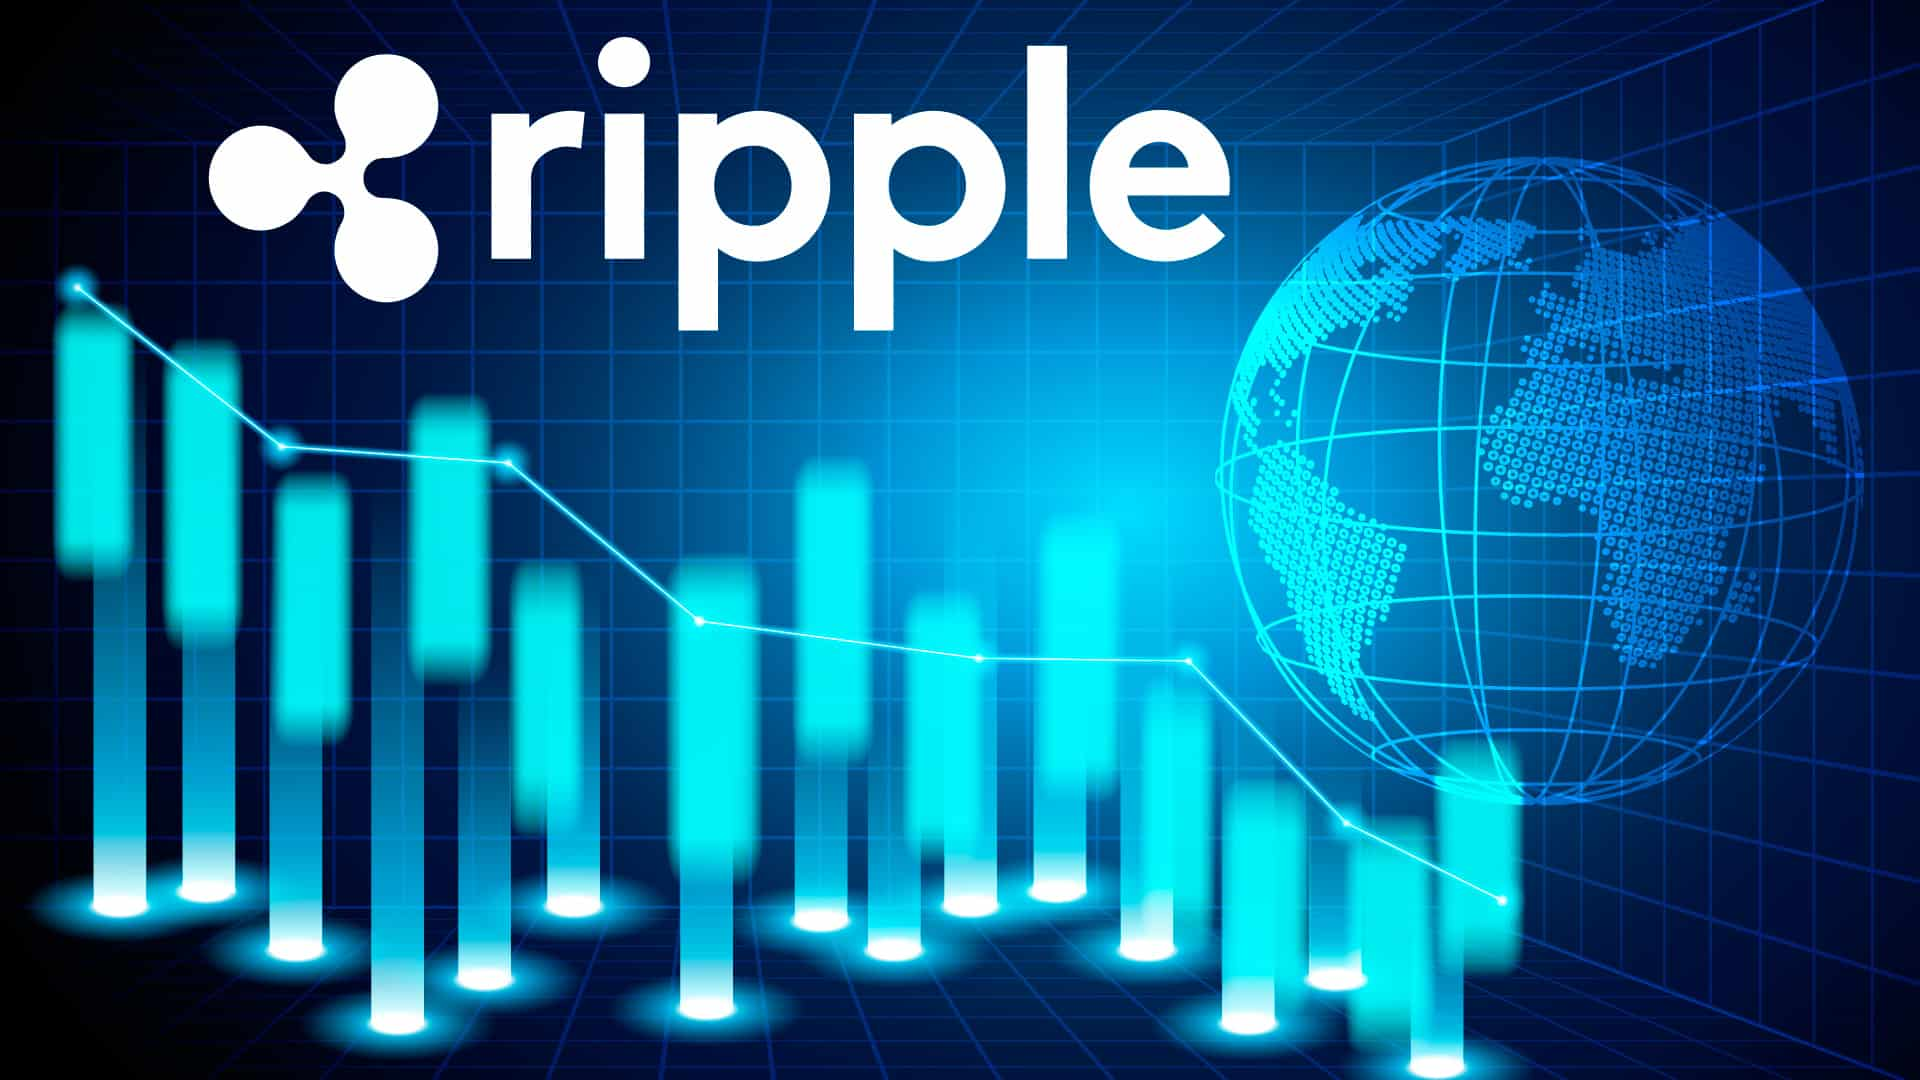 ripple news latest news updates on ripple xrp coin ripple news latest news updates on